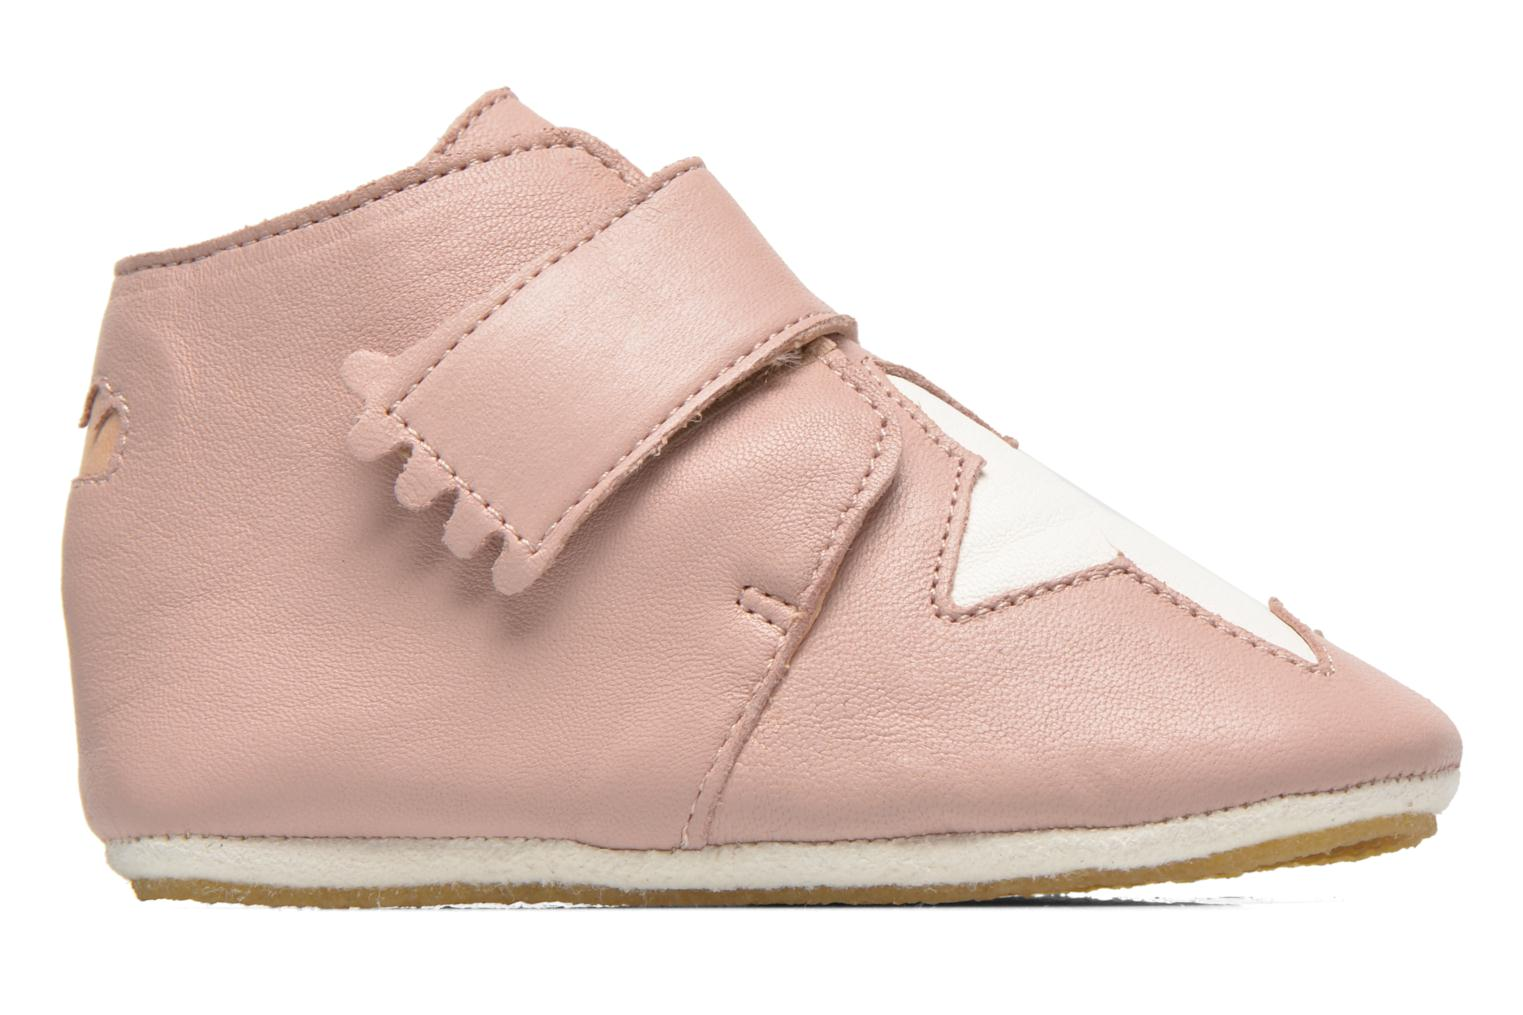 Chaussons Easy Peasy Kiny Patin Etoile Rose vue derrière